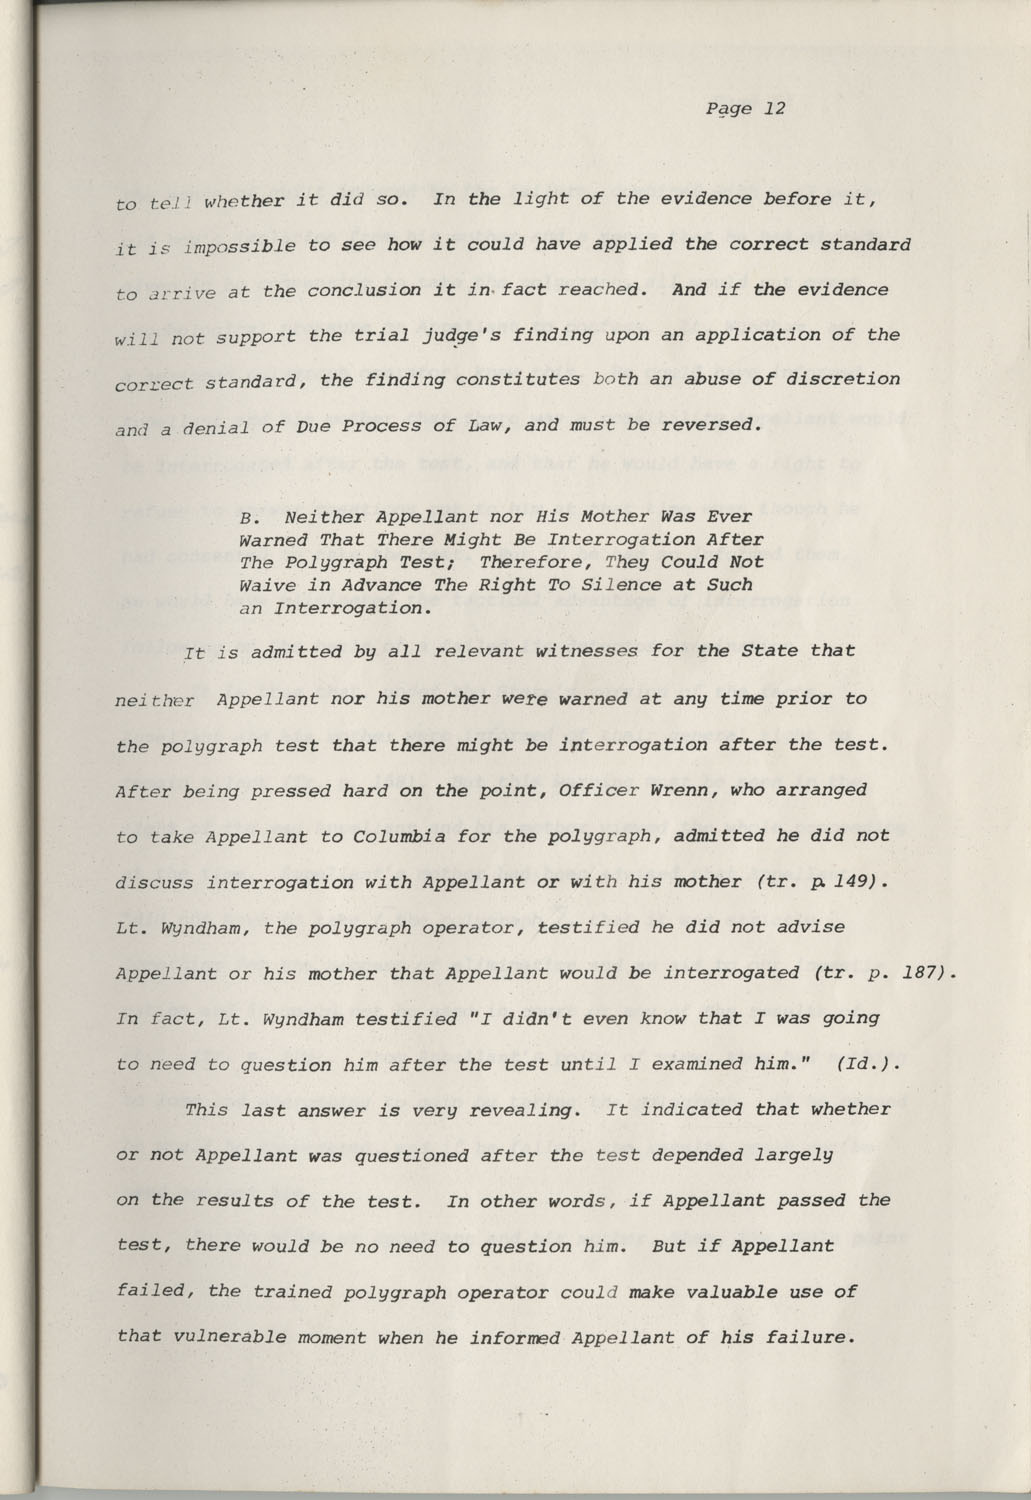 State of South Carolina vs. Robert Lee Smith, Brief of Appellant, Page 12